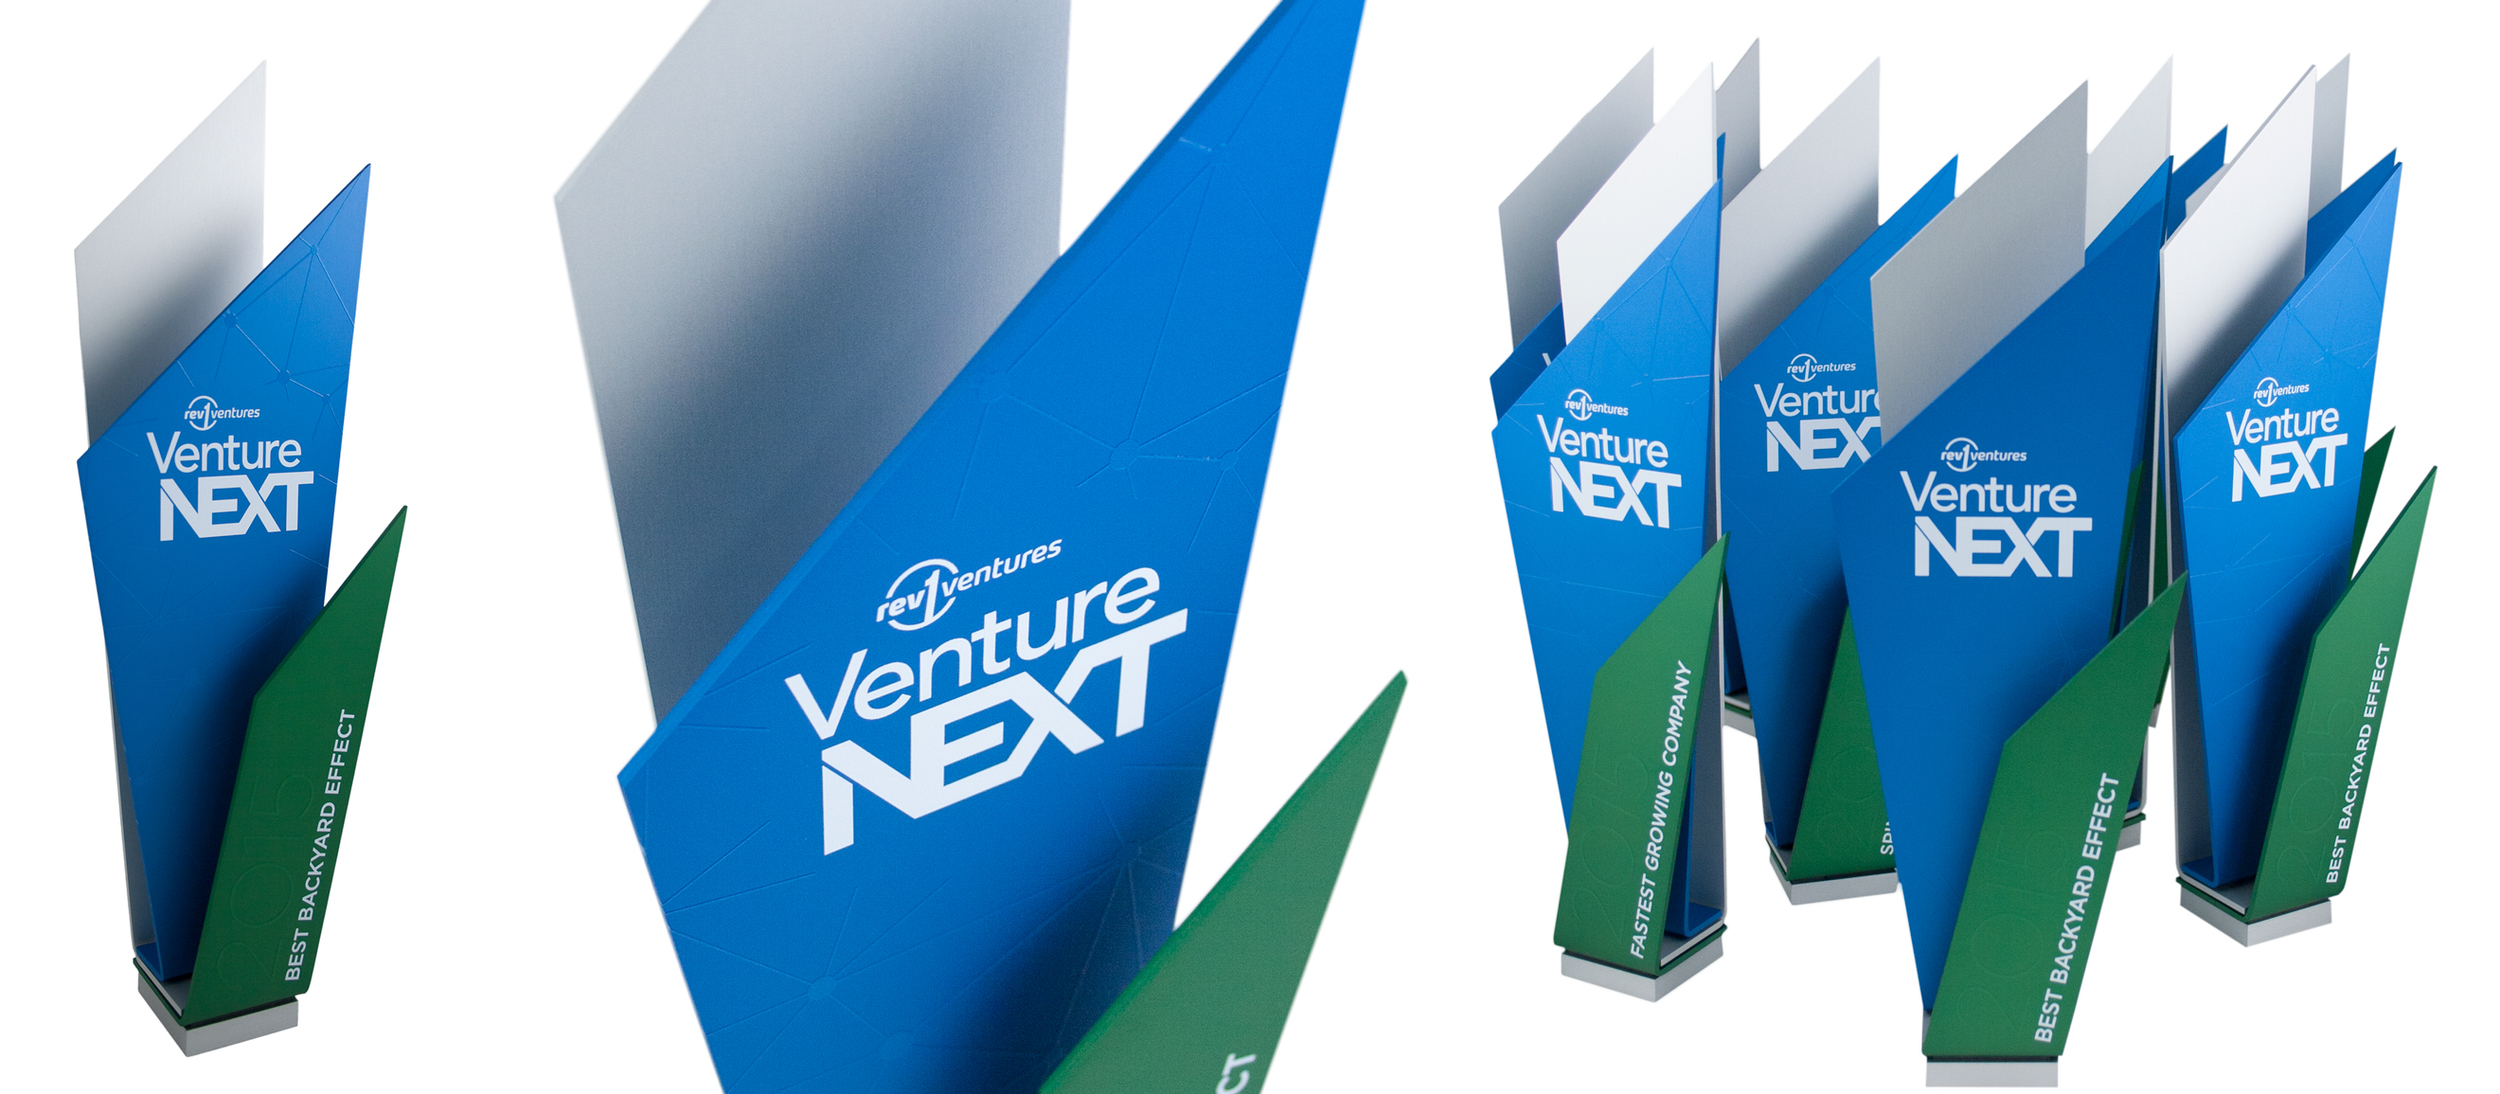 venture - next technology business investment awards